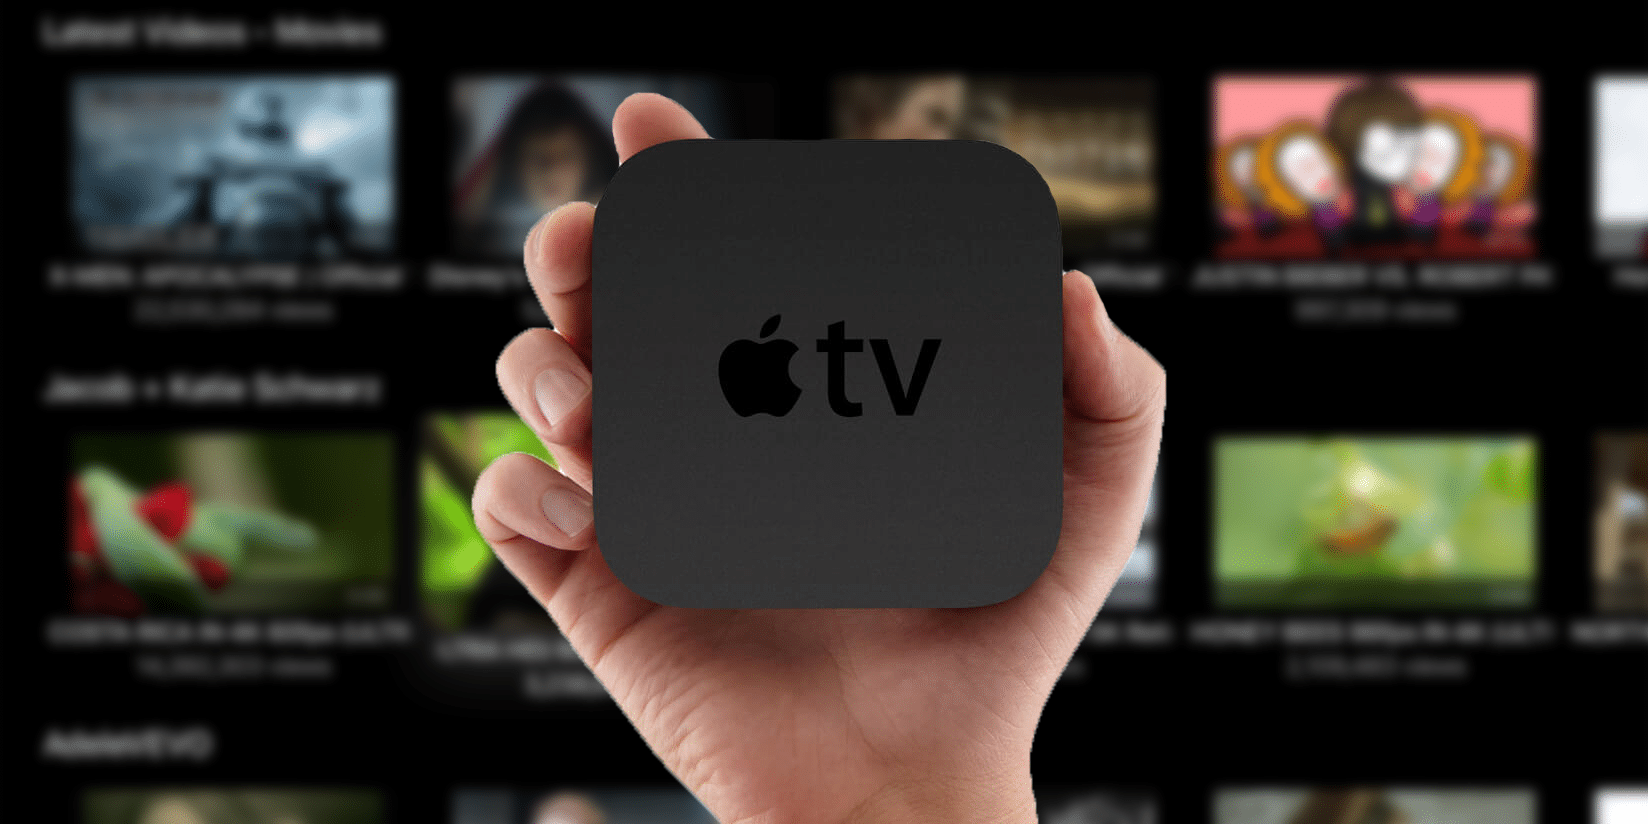 Your old Apple TV is OBSOLETE!